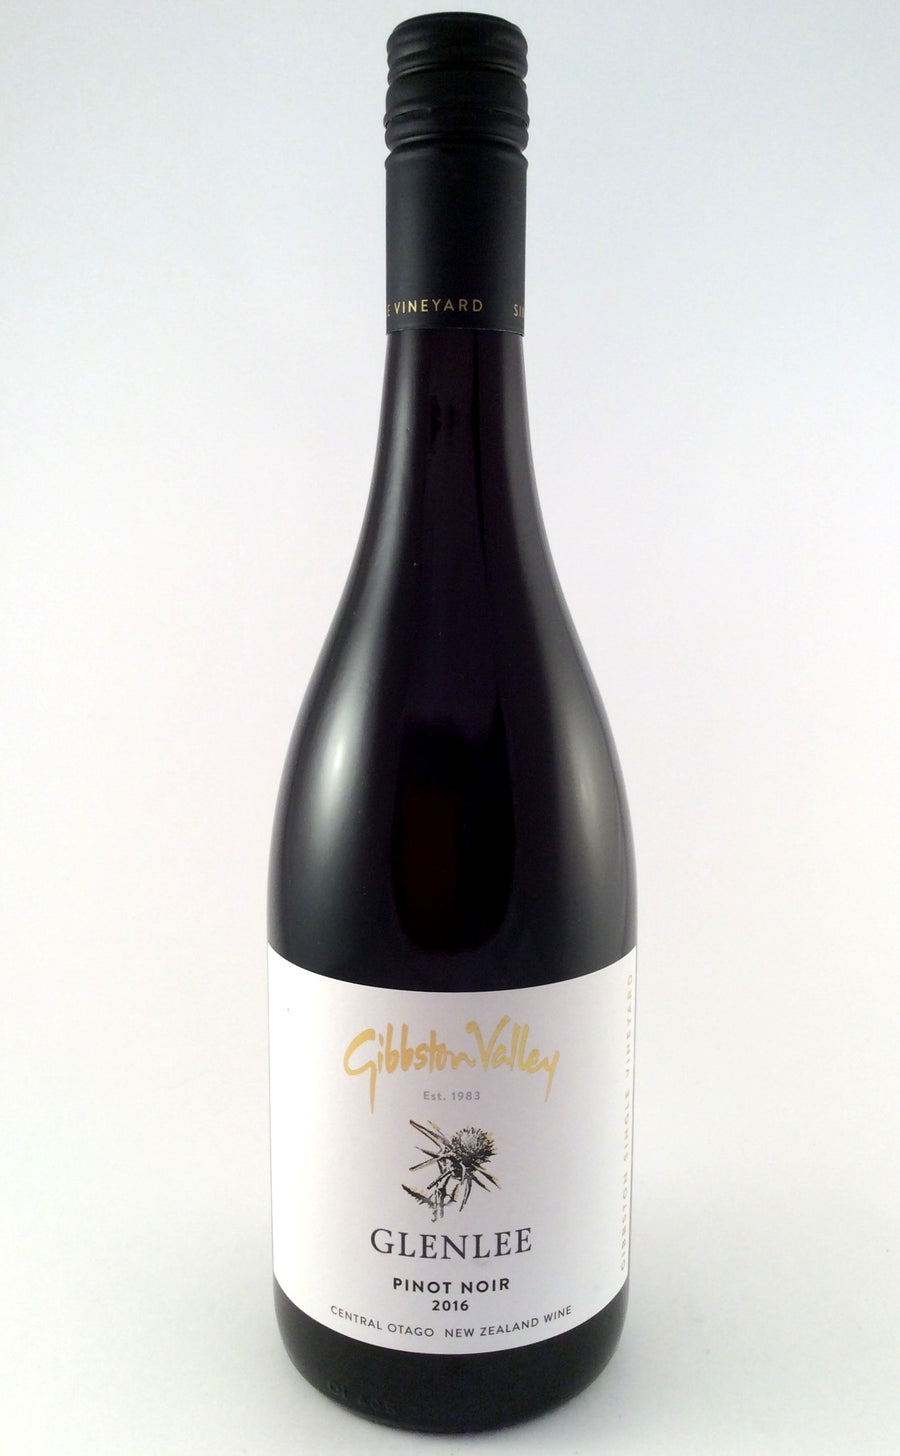 Gibbston Valley Glenlee Pinot Noir-Wine-Wineseeker